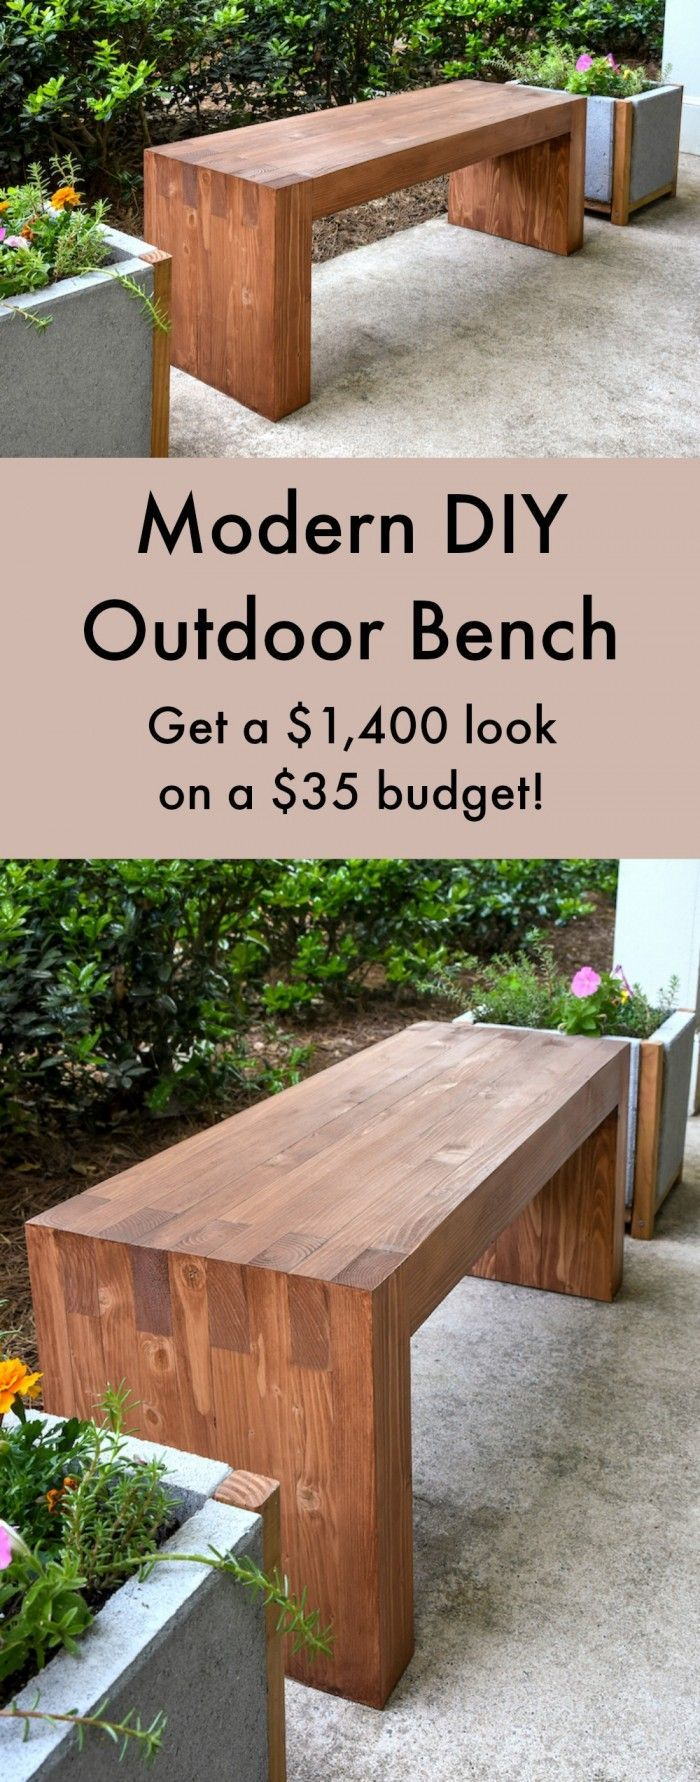 best wood for indoor furniture. This Easy Modern DIY Outdoor Bench Was Made With $35 Of Materials - And Uses No Best Wood For Indoor Furniture